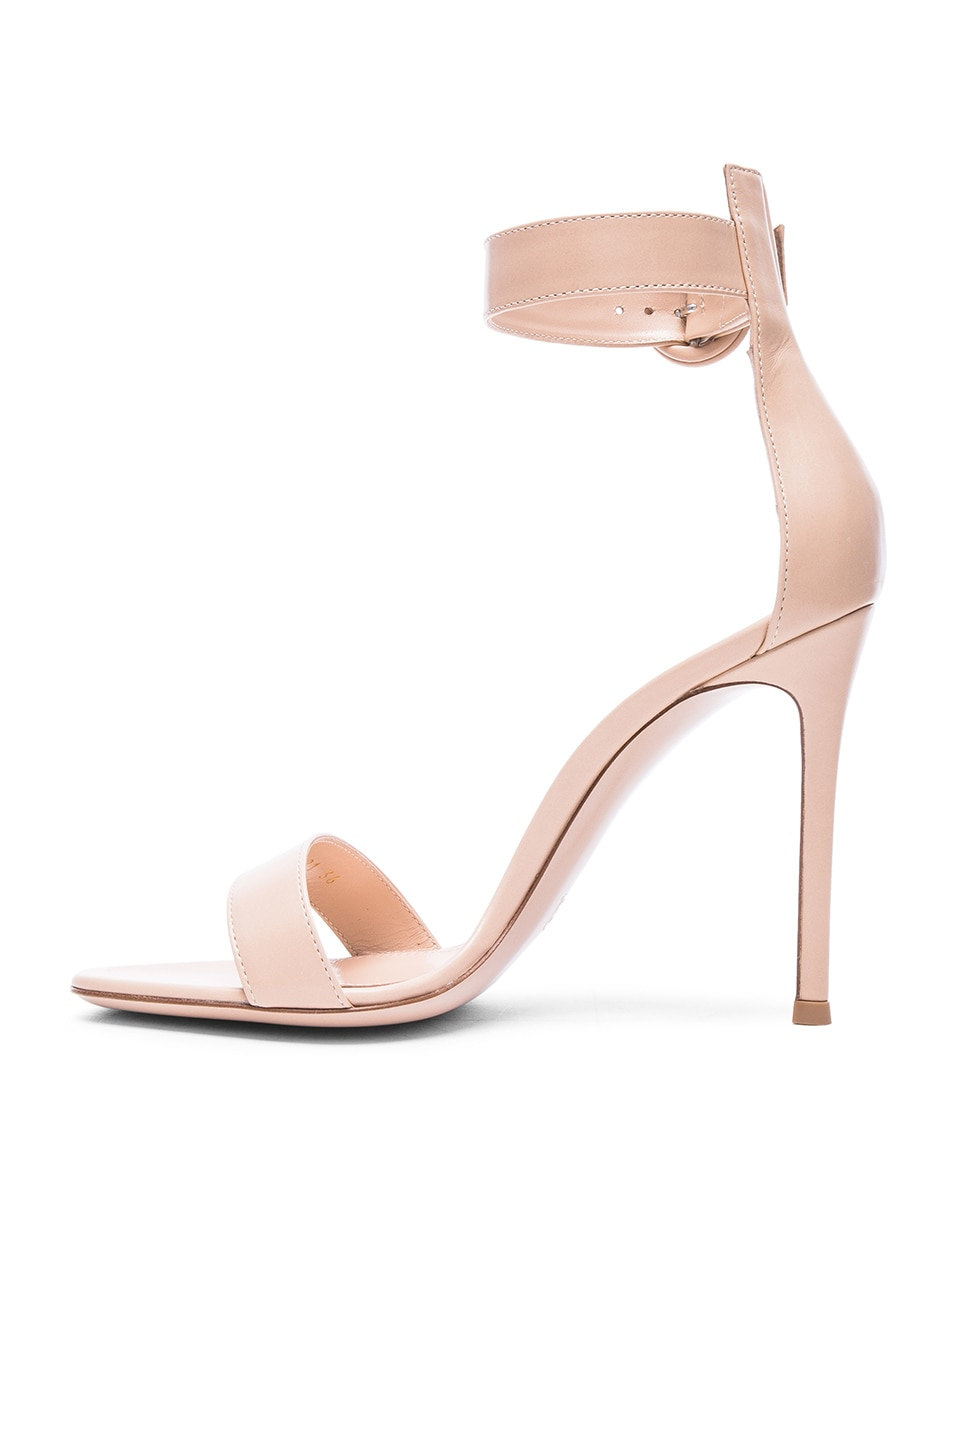 Image 5 of Gianvito Rossi Leather Portofino Heels in Nude